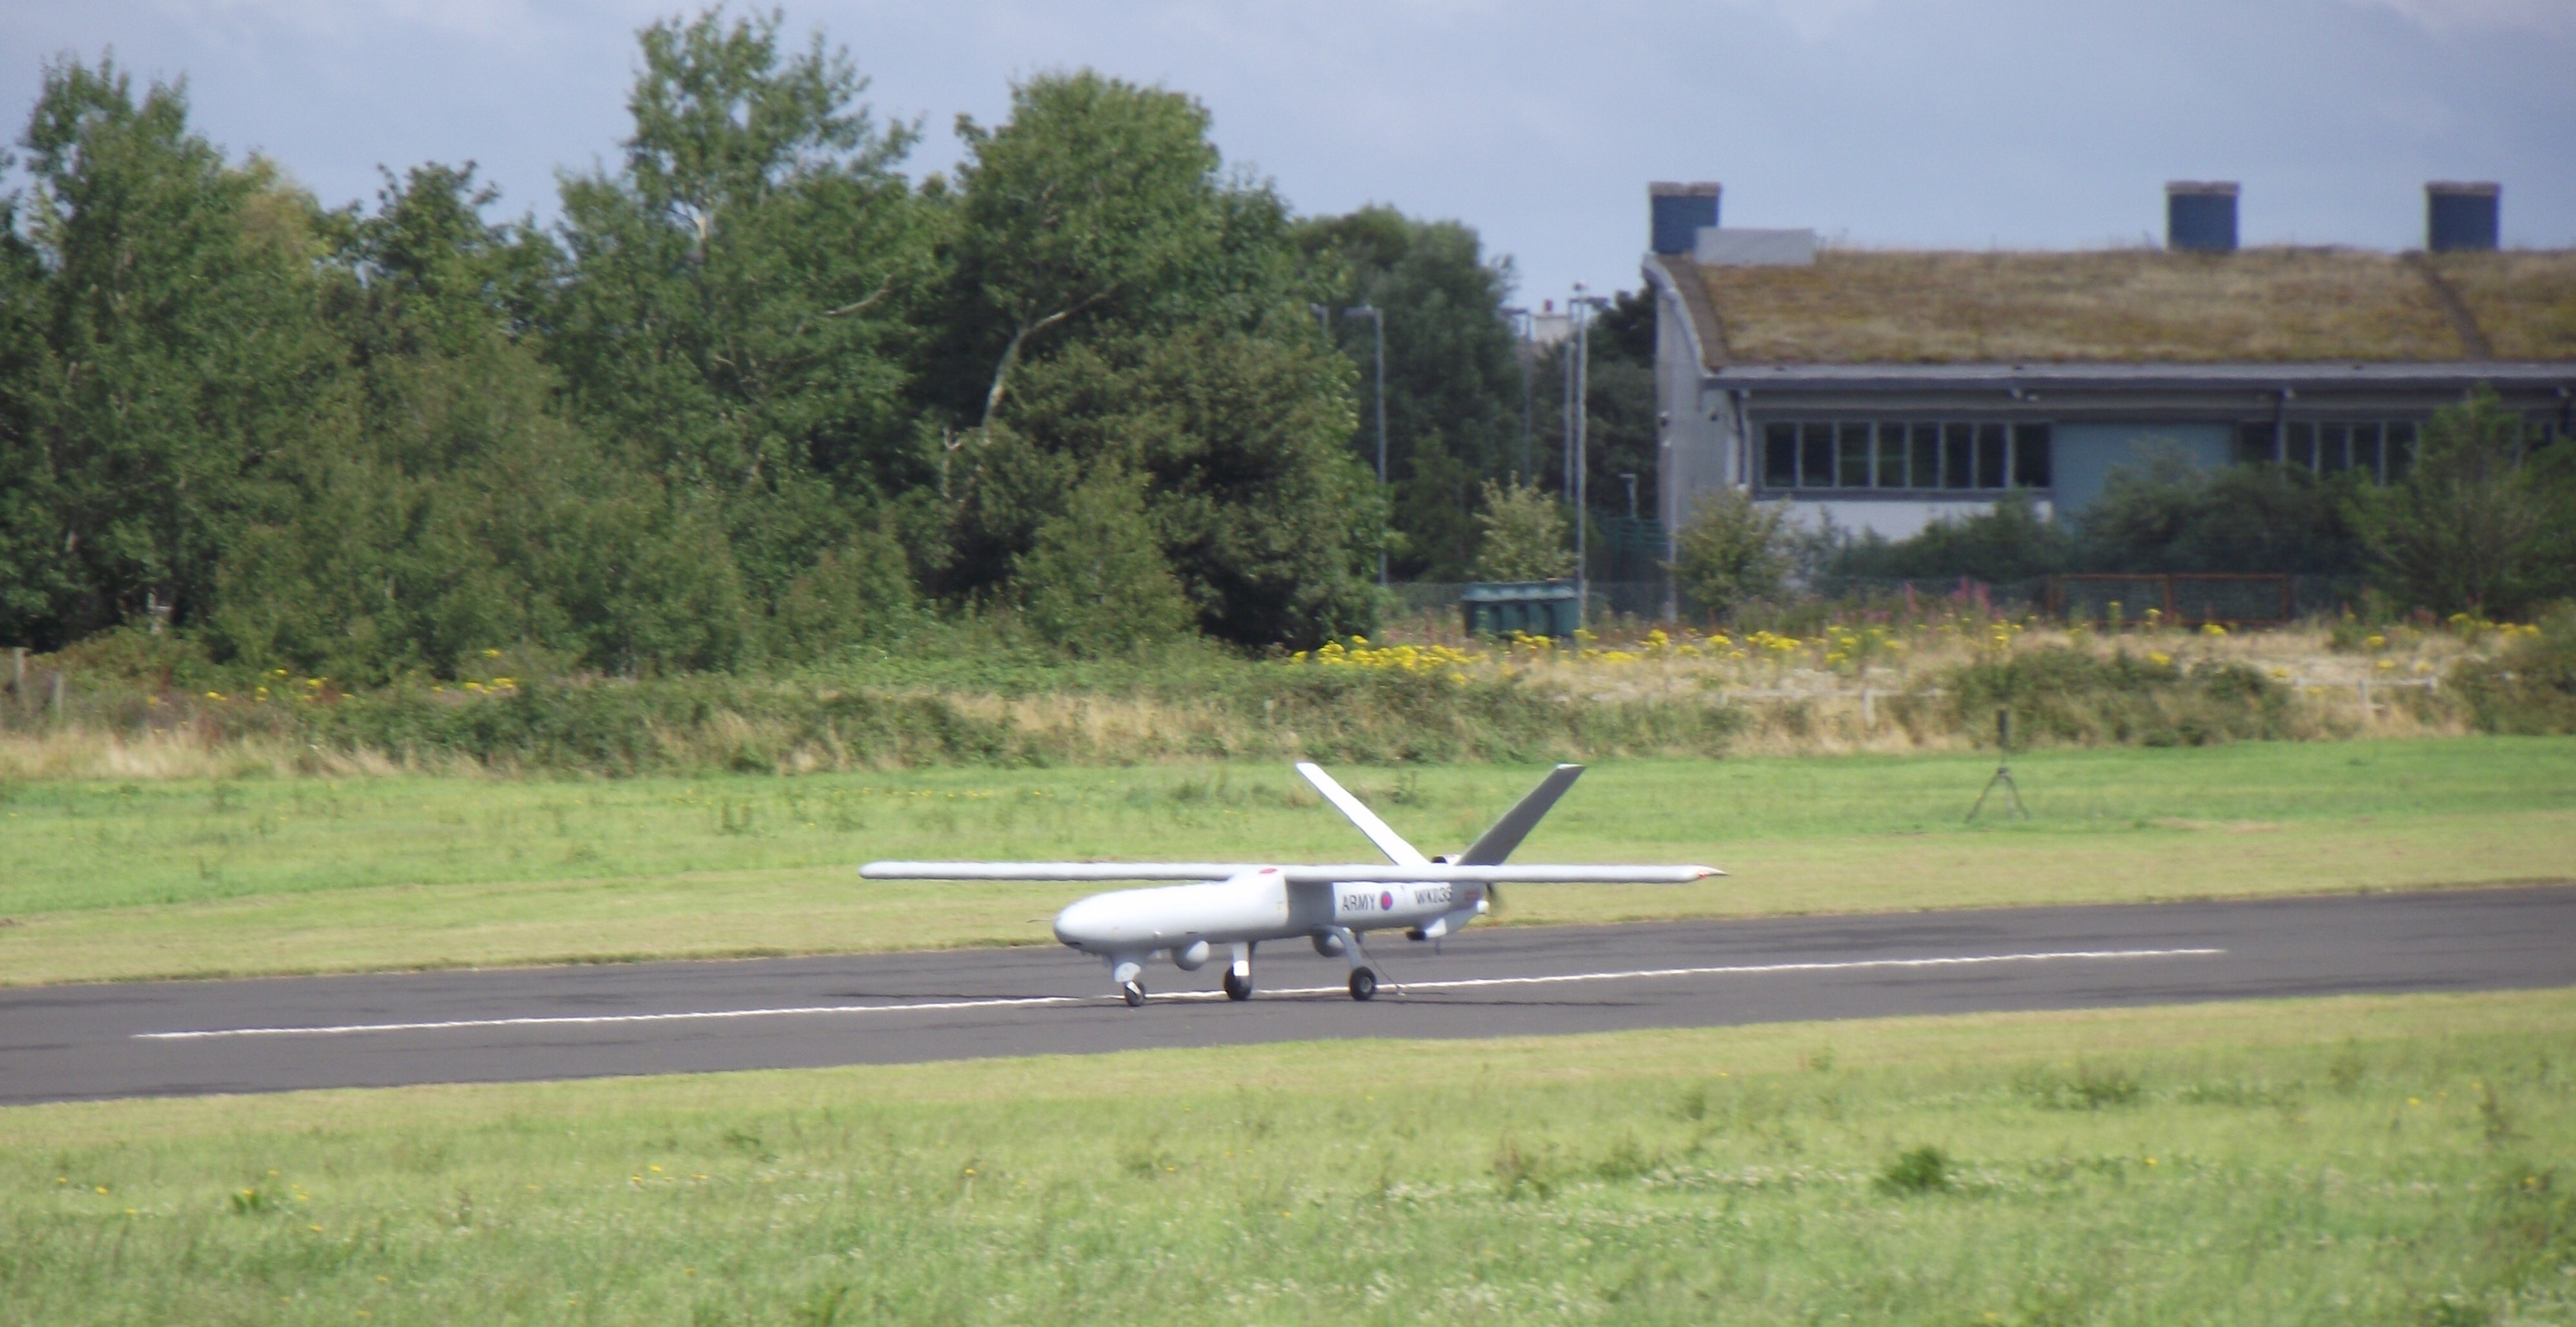 A Thales Watchkeeper on the runway at its test centre at West Wales Airport, Aberporth (Photo: Jack Serle)